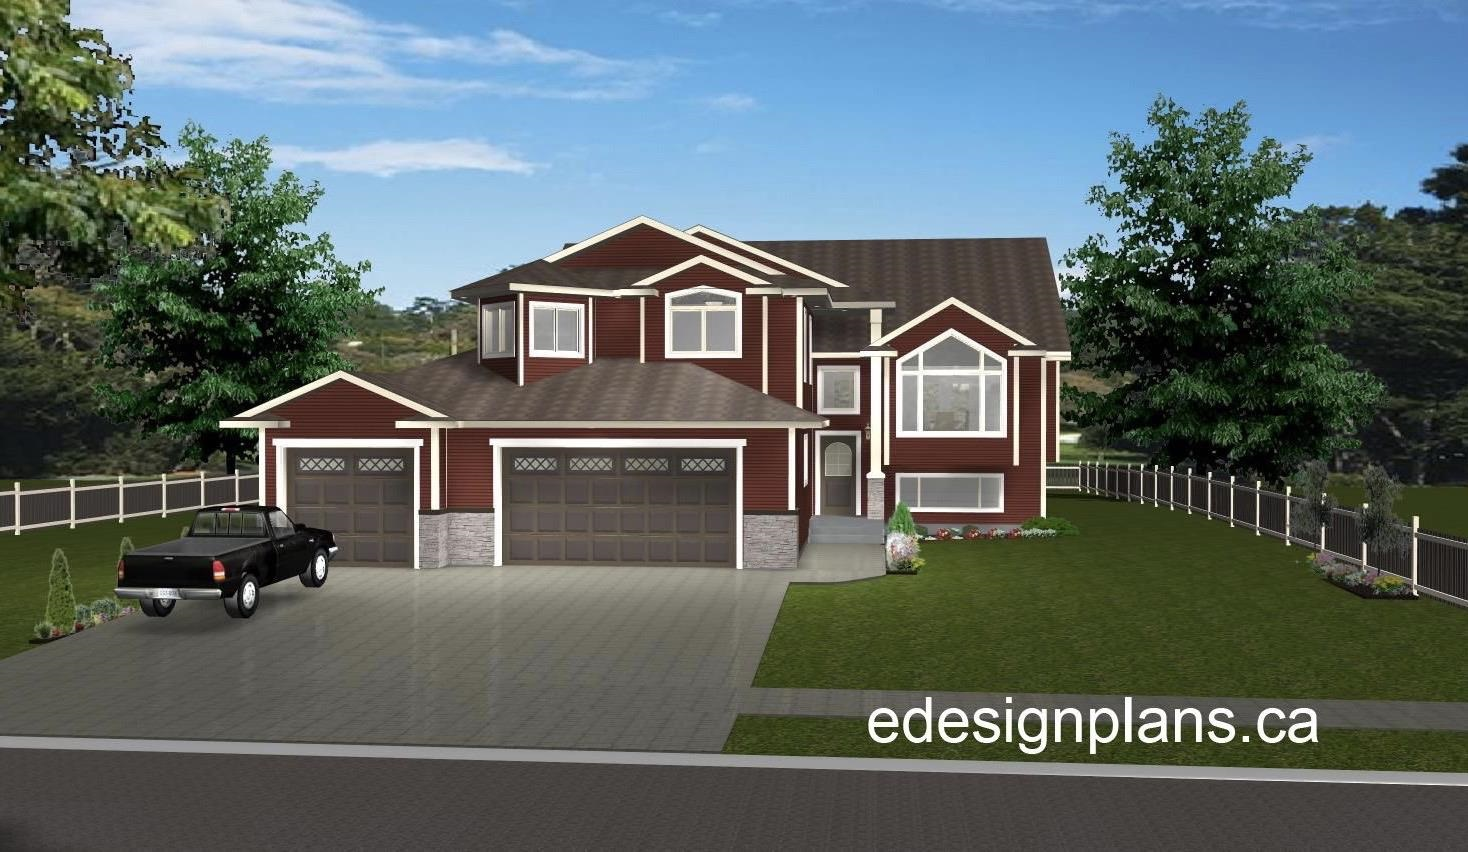 Build you DREAM HOME on this 2.73 ACRE parcel in the MEADOWS OF ROSENTHAL!  Just MINUTES west of STONY PLAIN!  Paved subdivision with underground power.  Quick commute to town and schools.  BUILD TO SUIT, receive $20,000 lot discount if built with Linhan Developments!!!  Lot #5 also available.